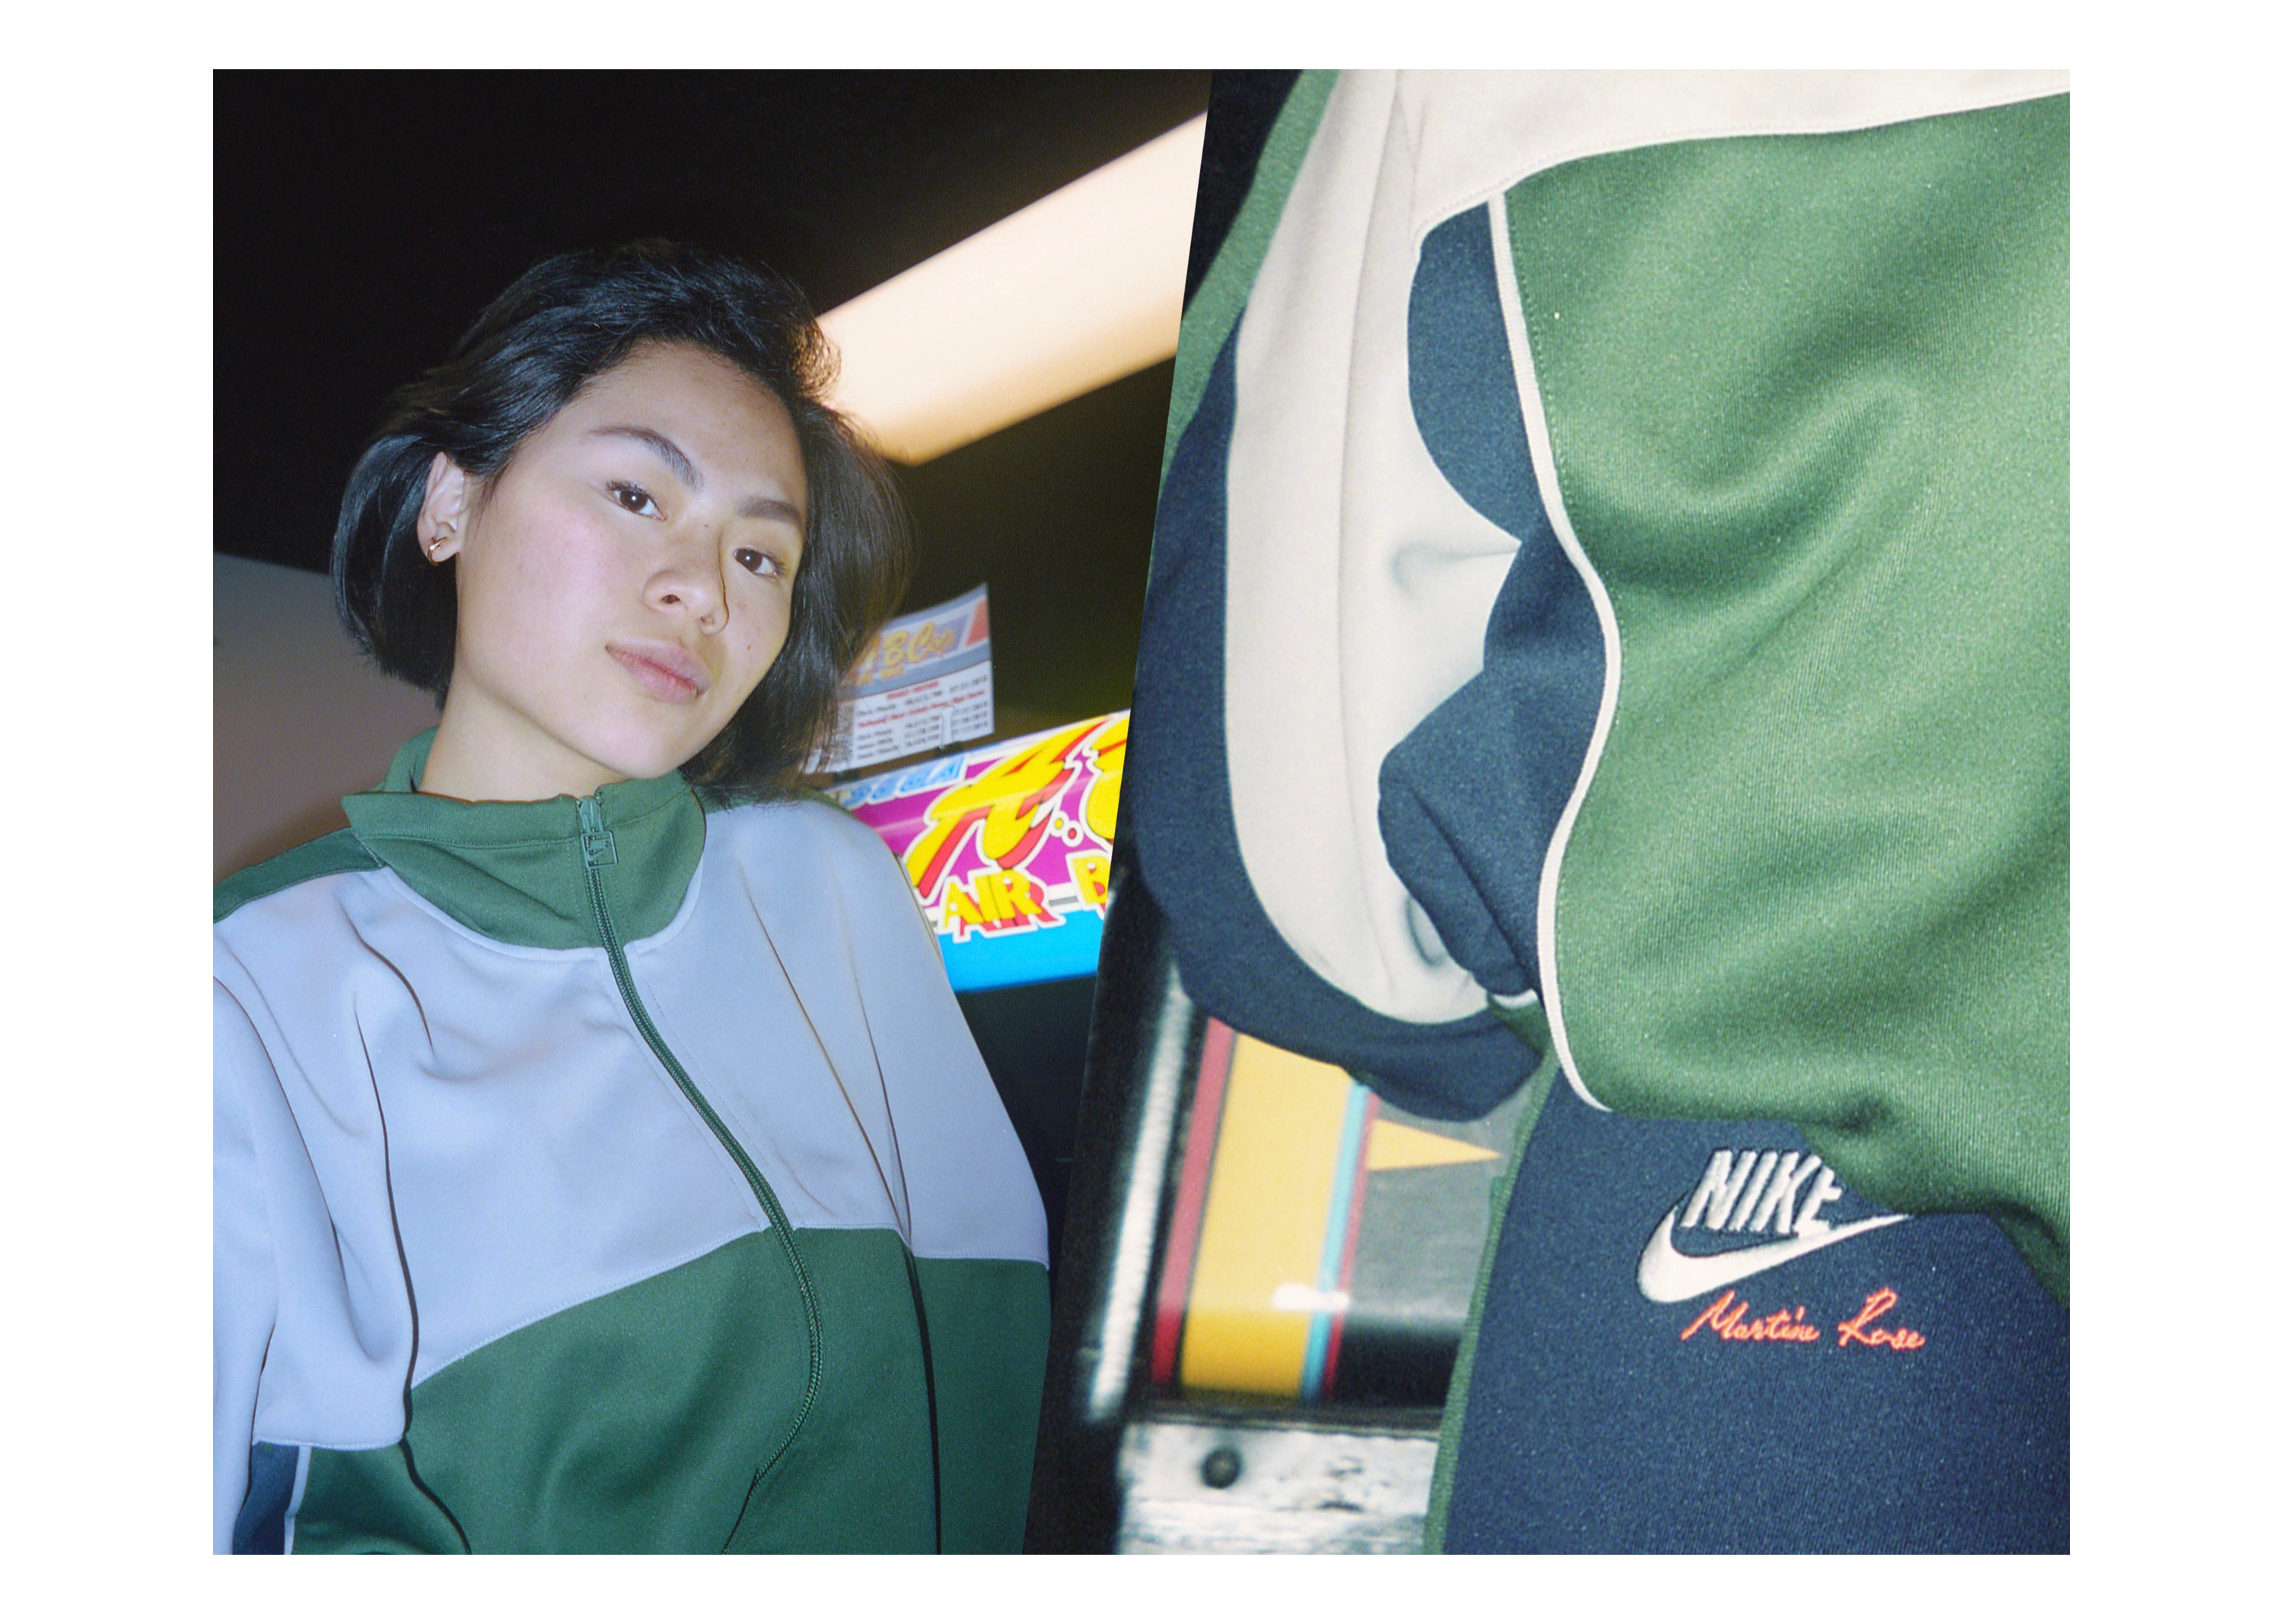 martine_rose_nike_blog_0005_Layer 2